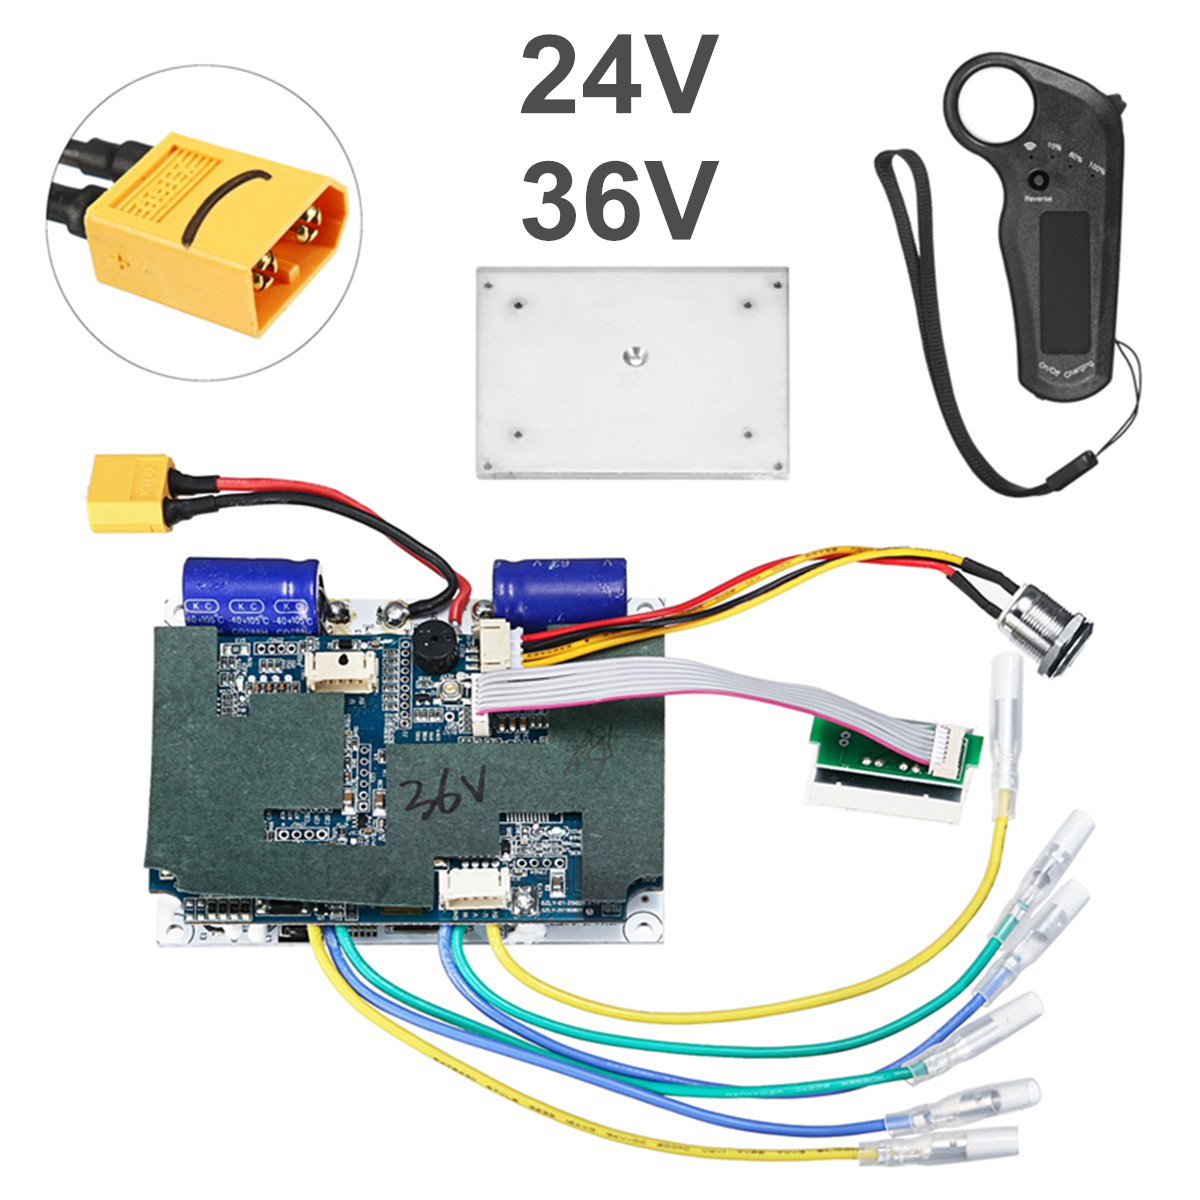 24/36V Double Belt Motor Electric Skateboard Controller Longboard ESC Substitute Parts Scooter Mainboard Instrument Tools